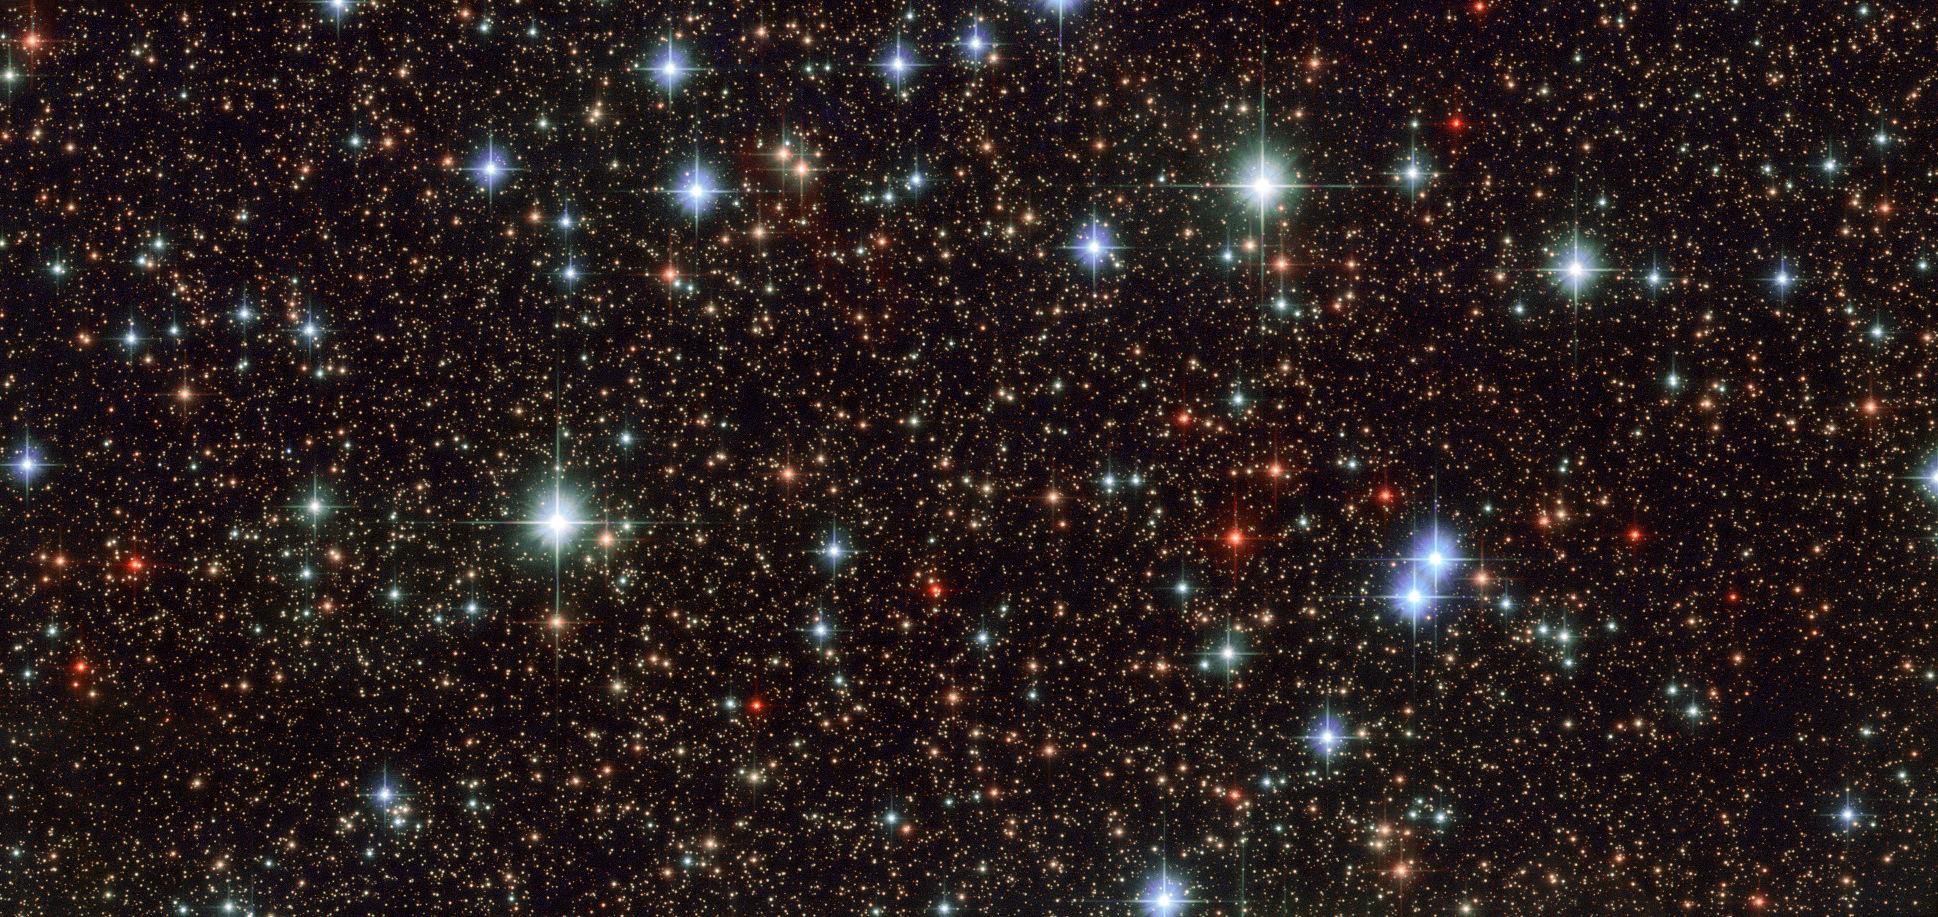 "This extreme zoom view of a star field in Sagittarius by the NASA/ESA Hubble Space Telescope is just 3.2 by 1.5 arcminutes (0.054° x 0.026°) in size, centred on &aplha;=17h 47m 51.34s, δ=-24° 42' 17.02"". Click the image for a full-size version. Image credit: ESA/Hubble & NASA."